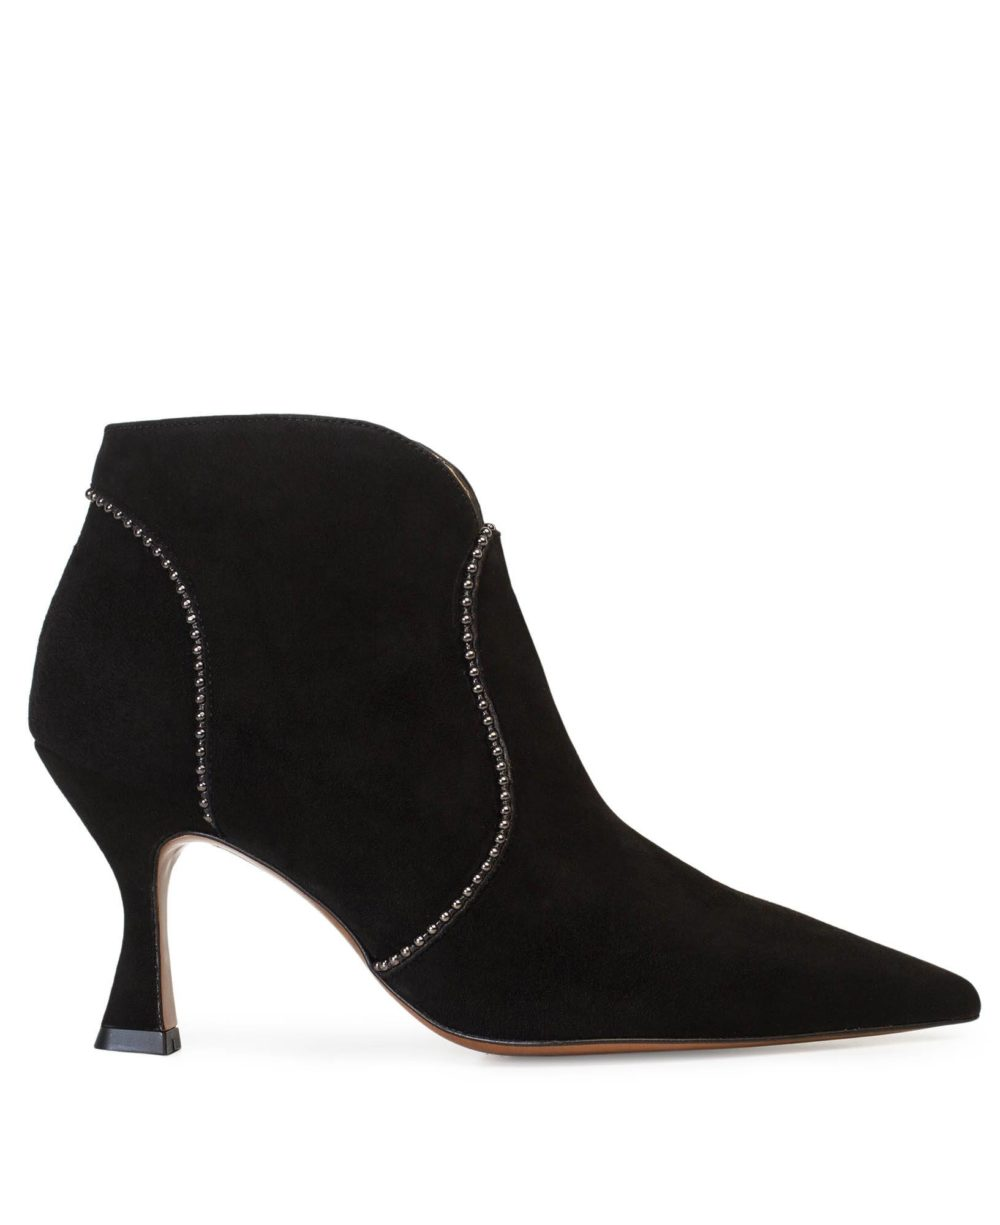 Leather Booties Paco Gil - P-3816 Black Suede P